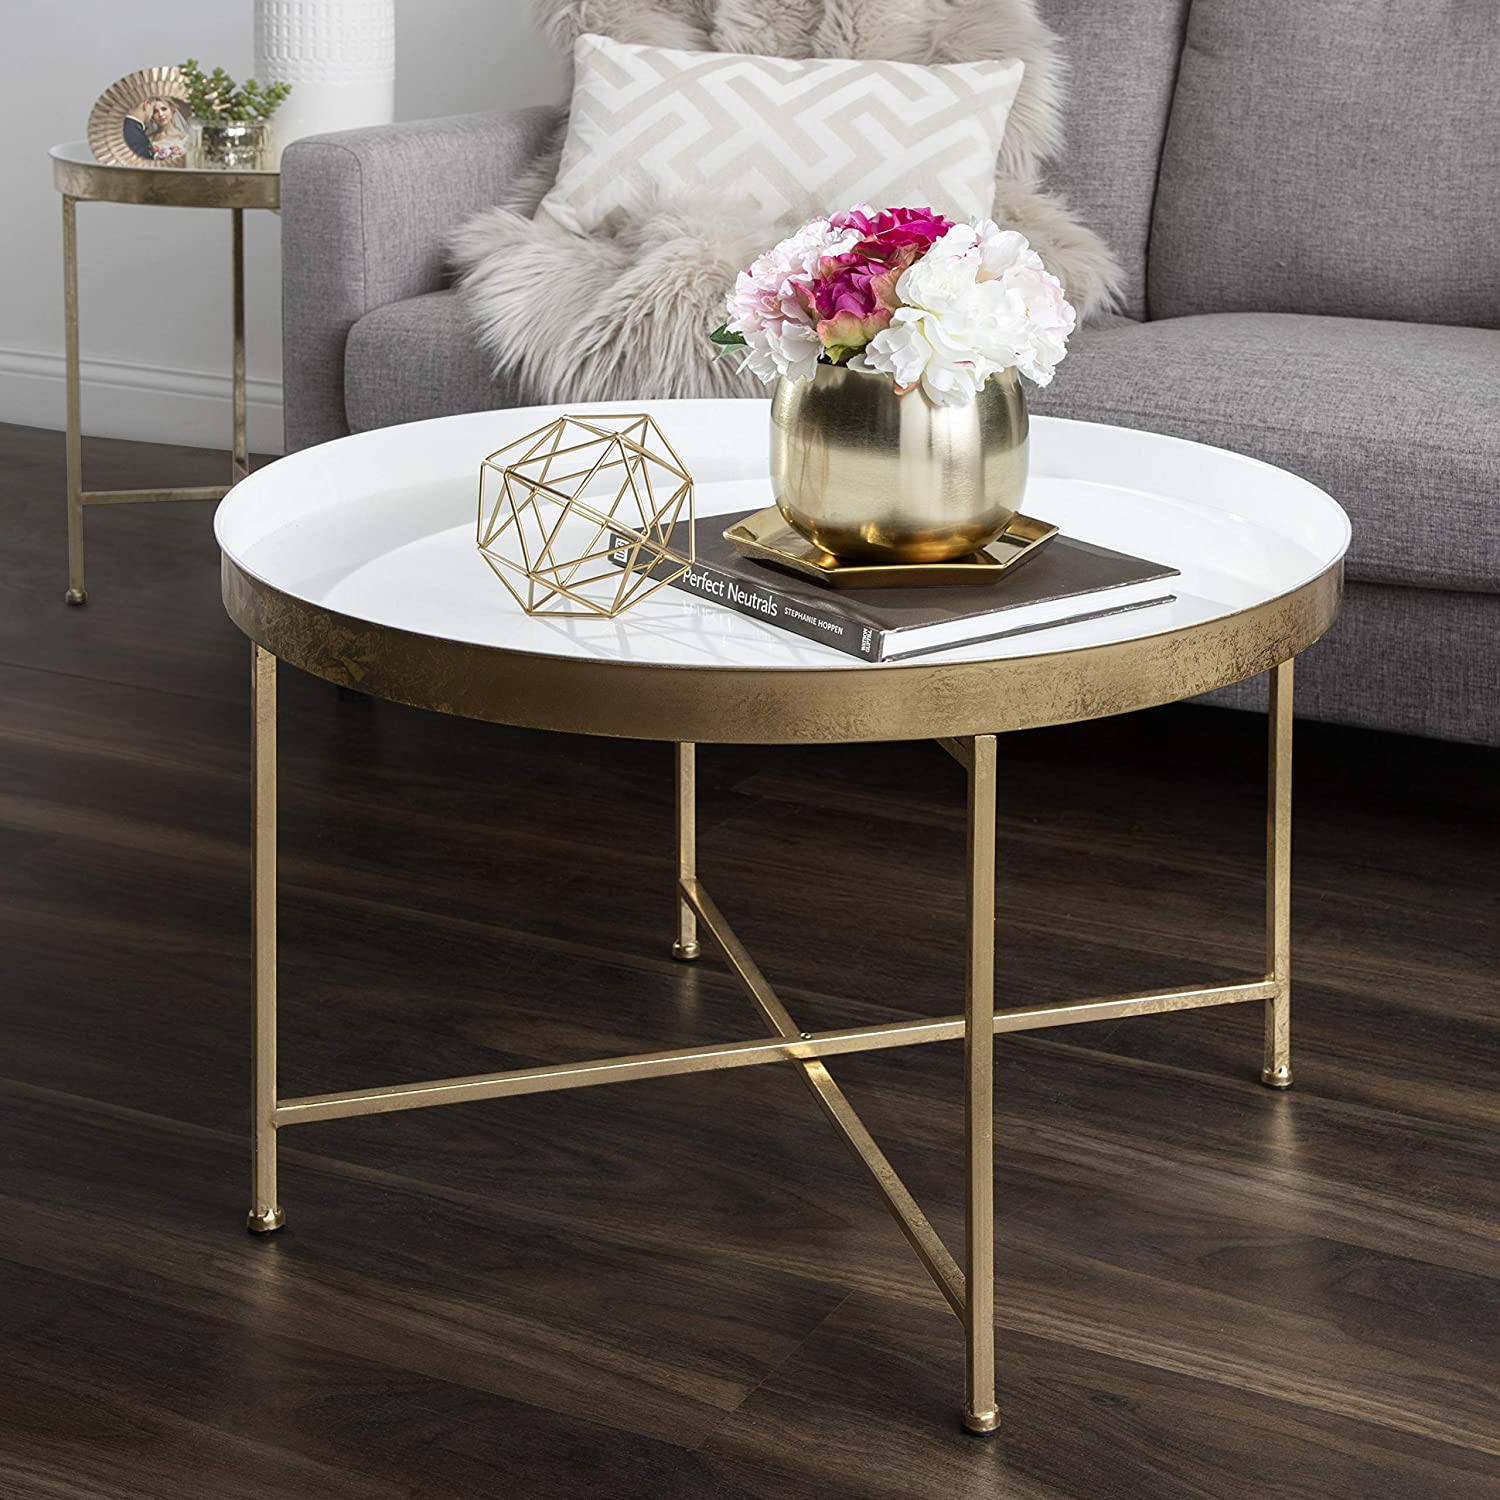 vintage-inspired-white-gold-coffee-table-gilded-x-shaped-base-white-tray-top-hollywood-glam-furniture